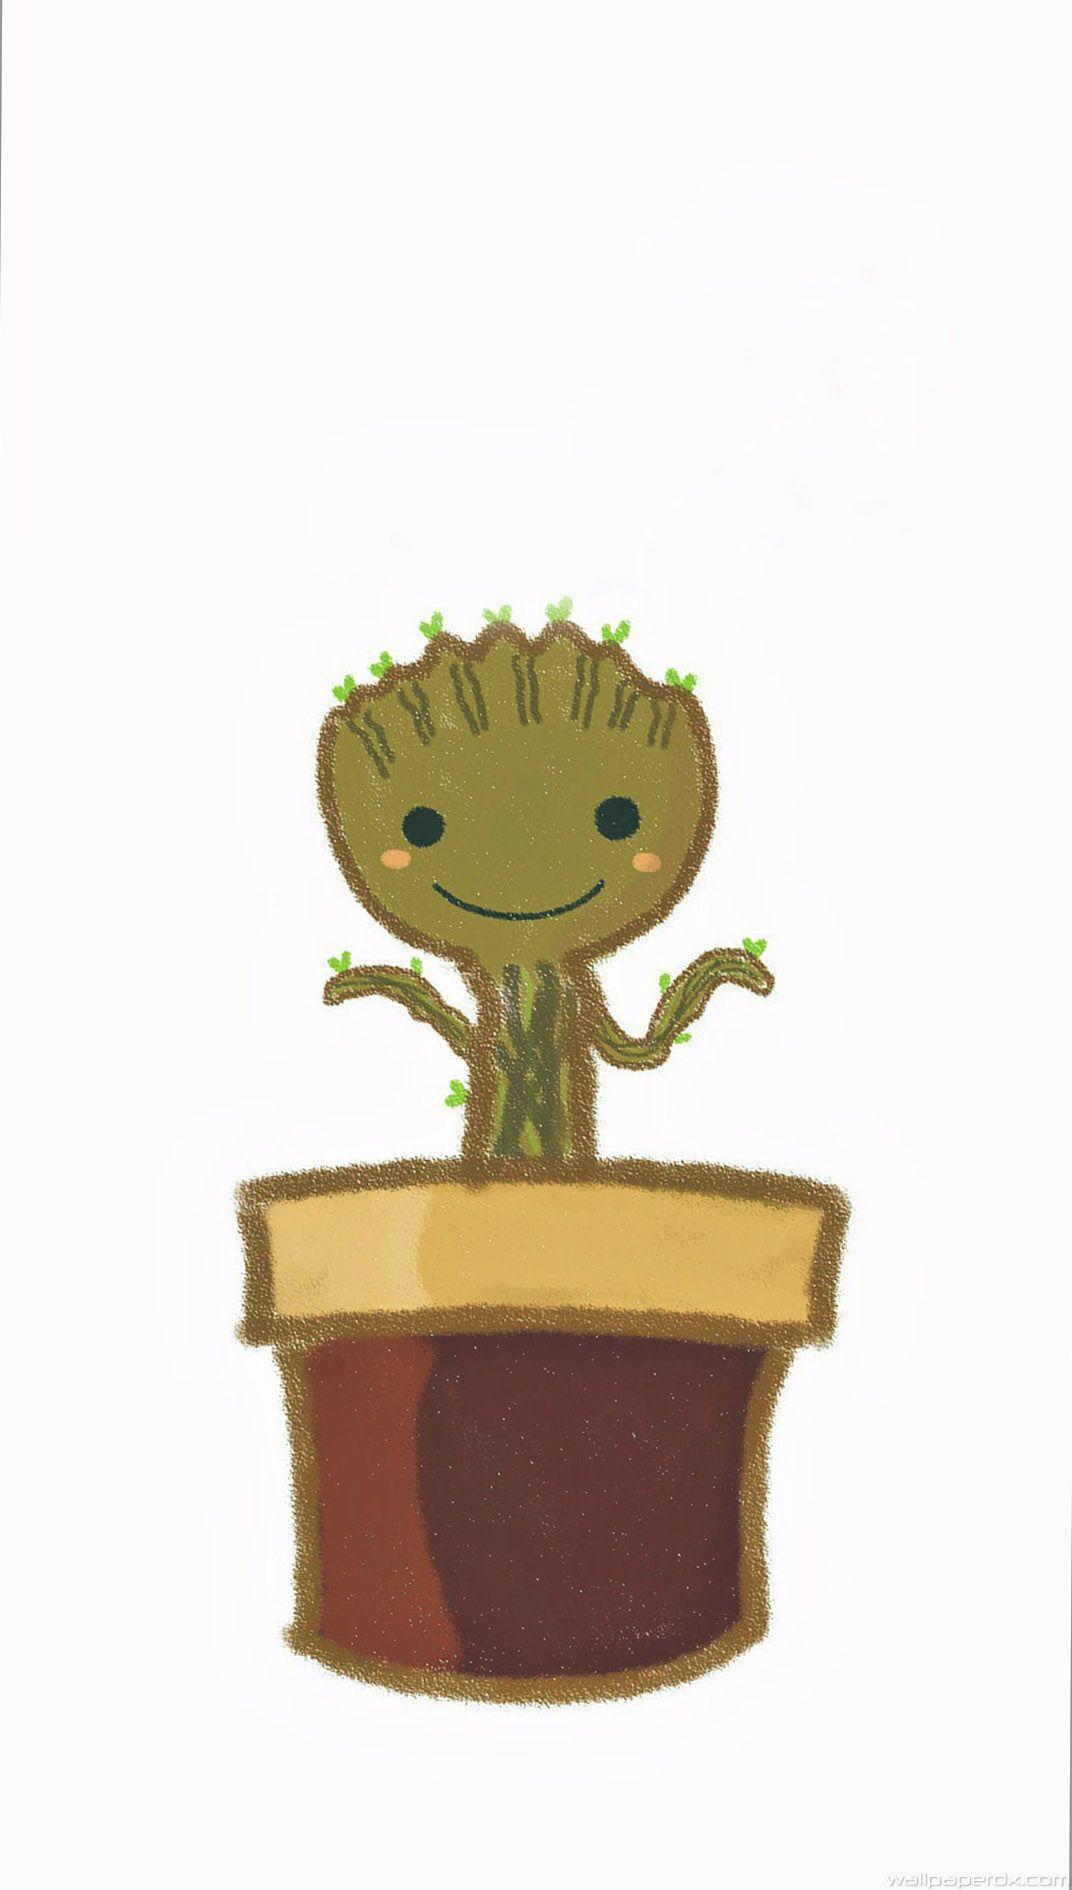 I Am Groot Baby Flower iphone 6 iphone 6 plus full_hd wallpapers